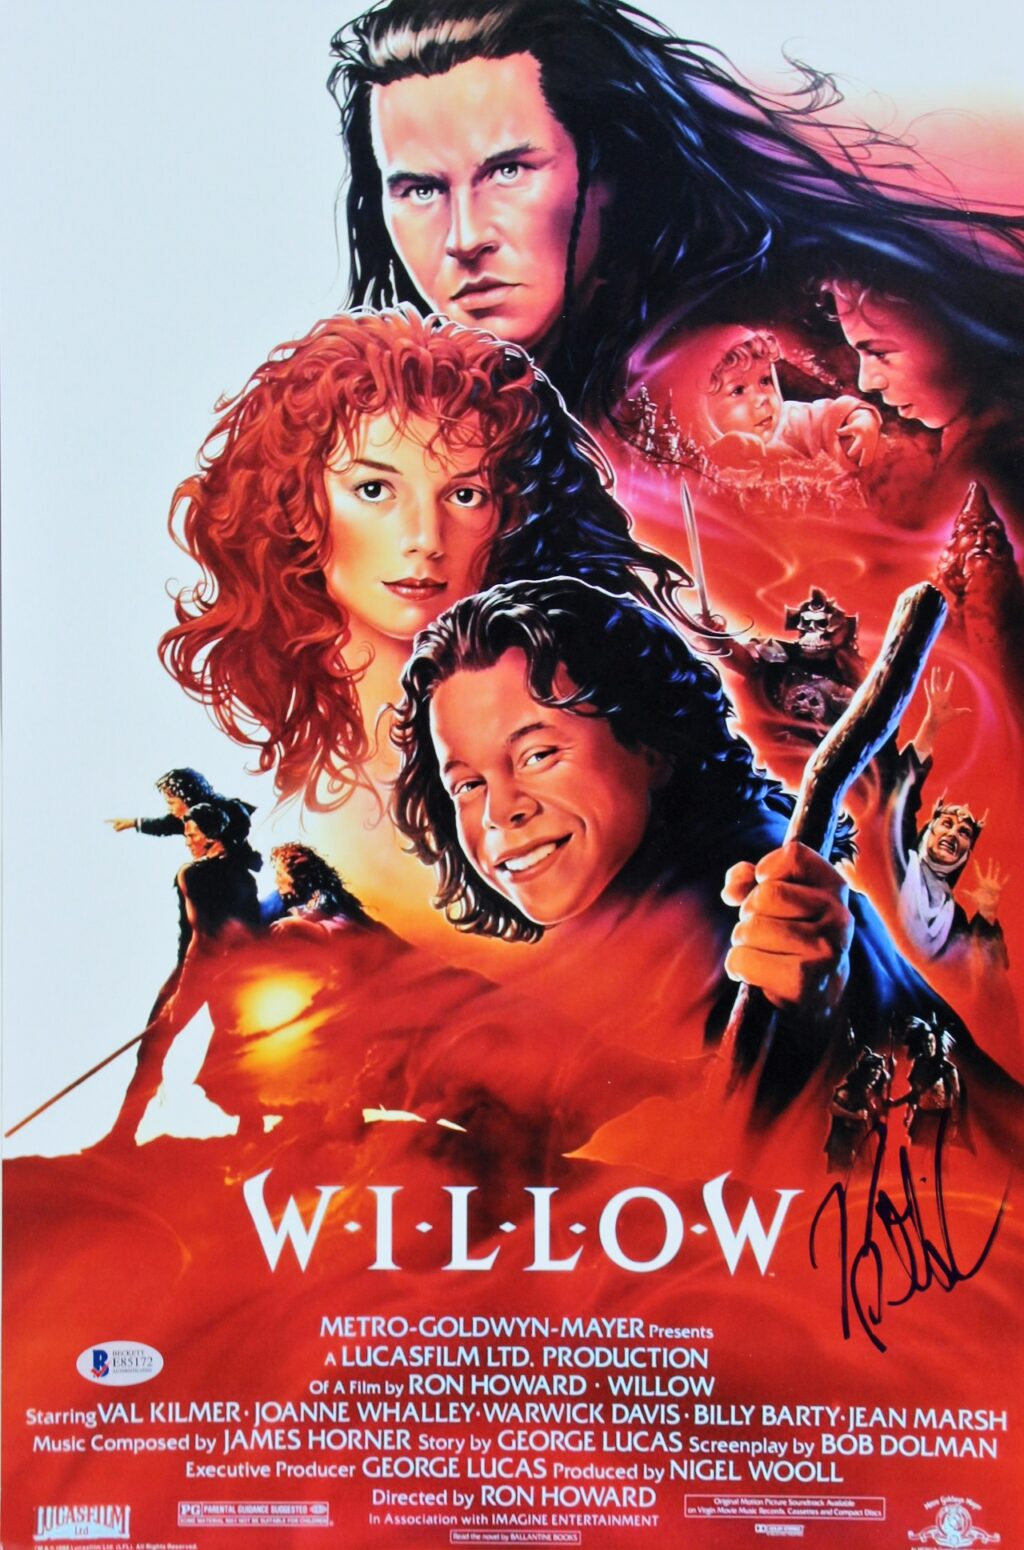 willow POSTER 1024x1550 - Warwick Davis Talks Returning For Disney+ WILLOW Series